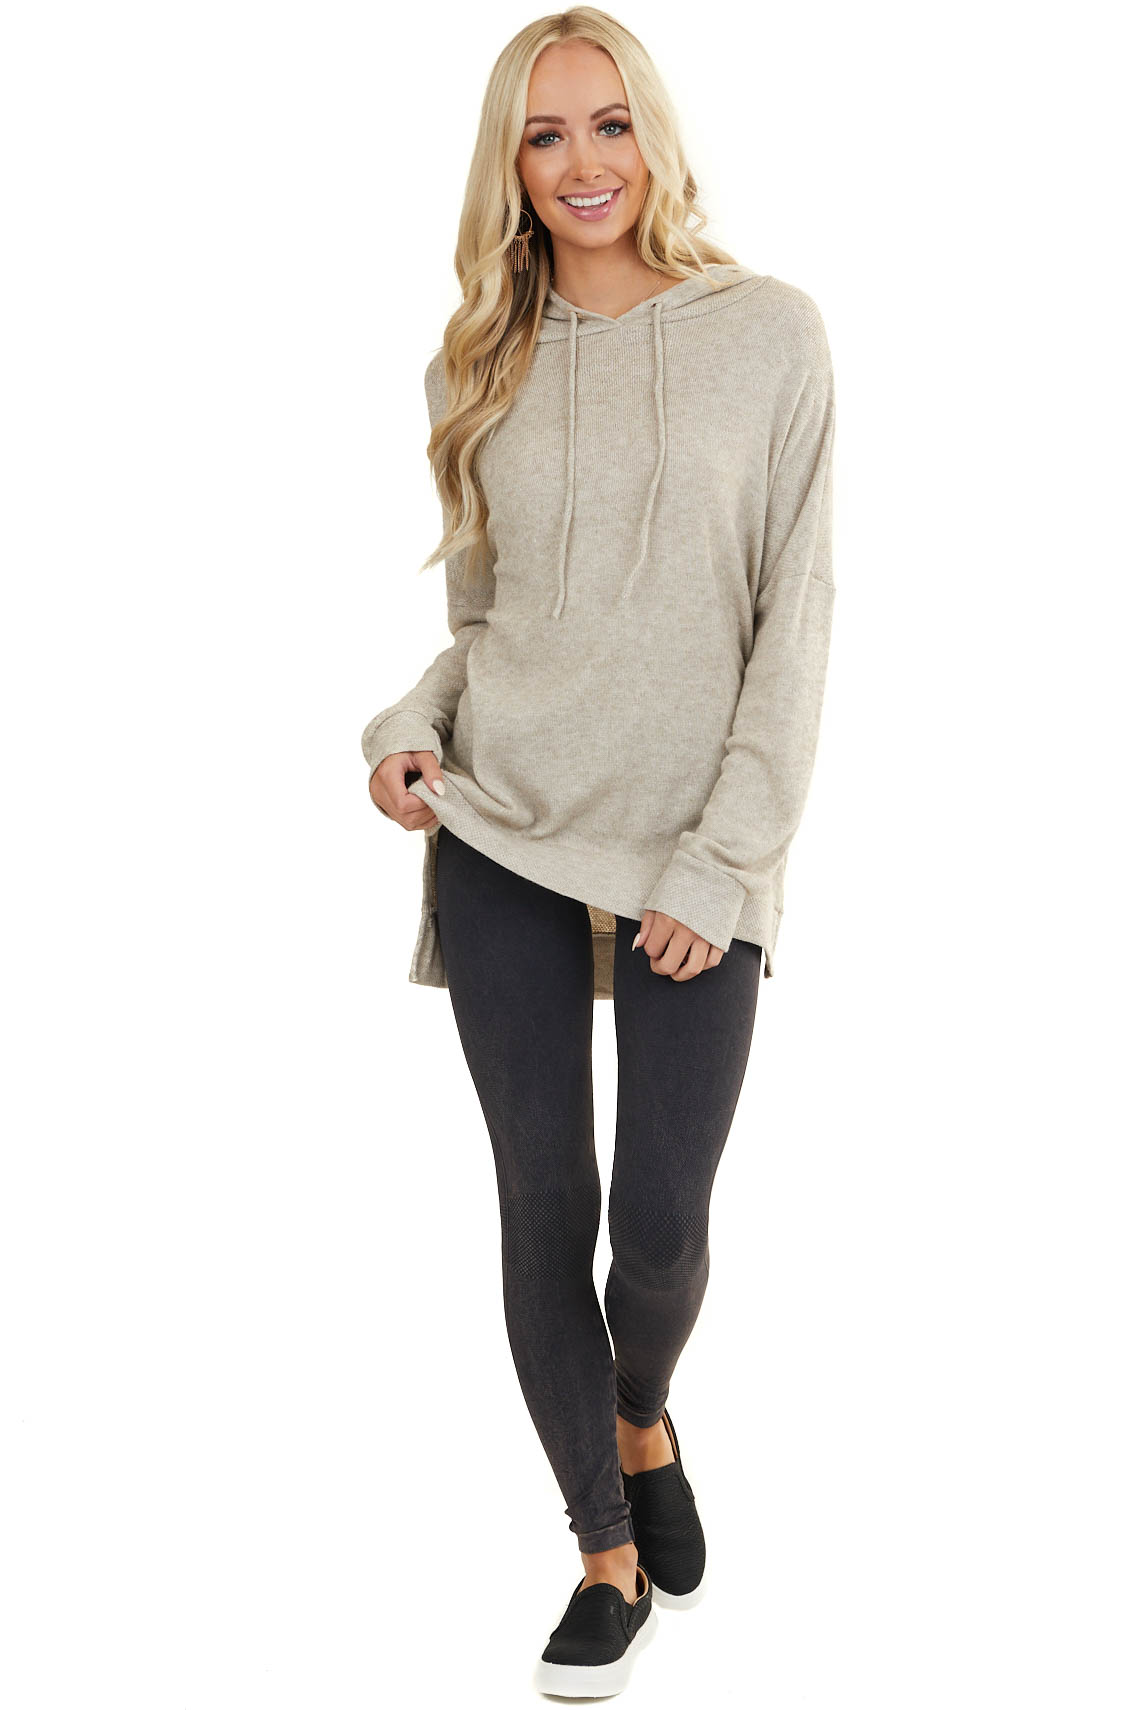 Oatmeal Textured Long Sleeve Sweater with Drawstring Hood